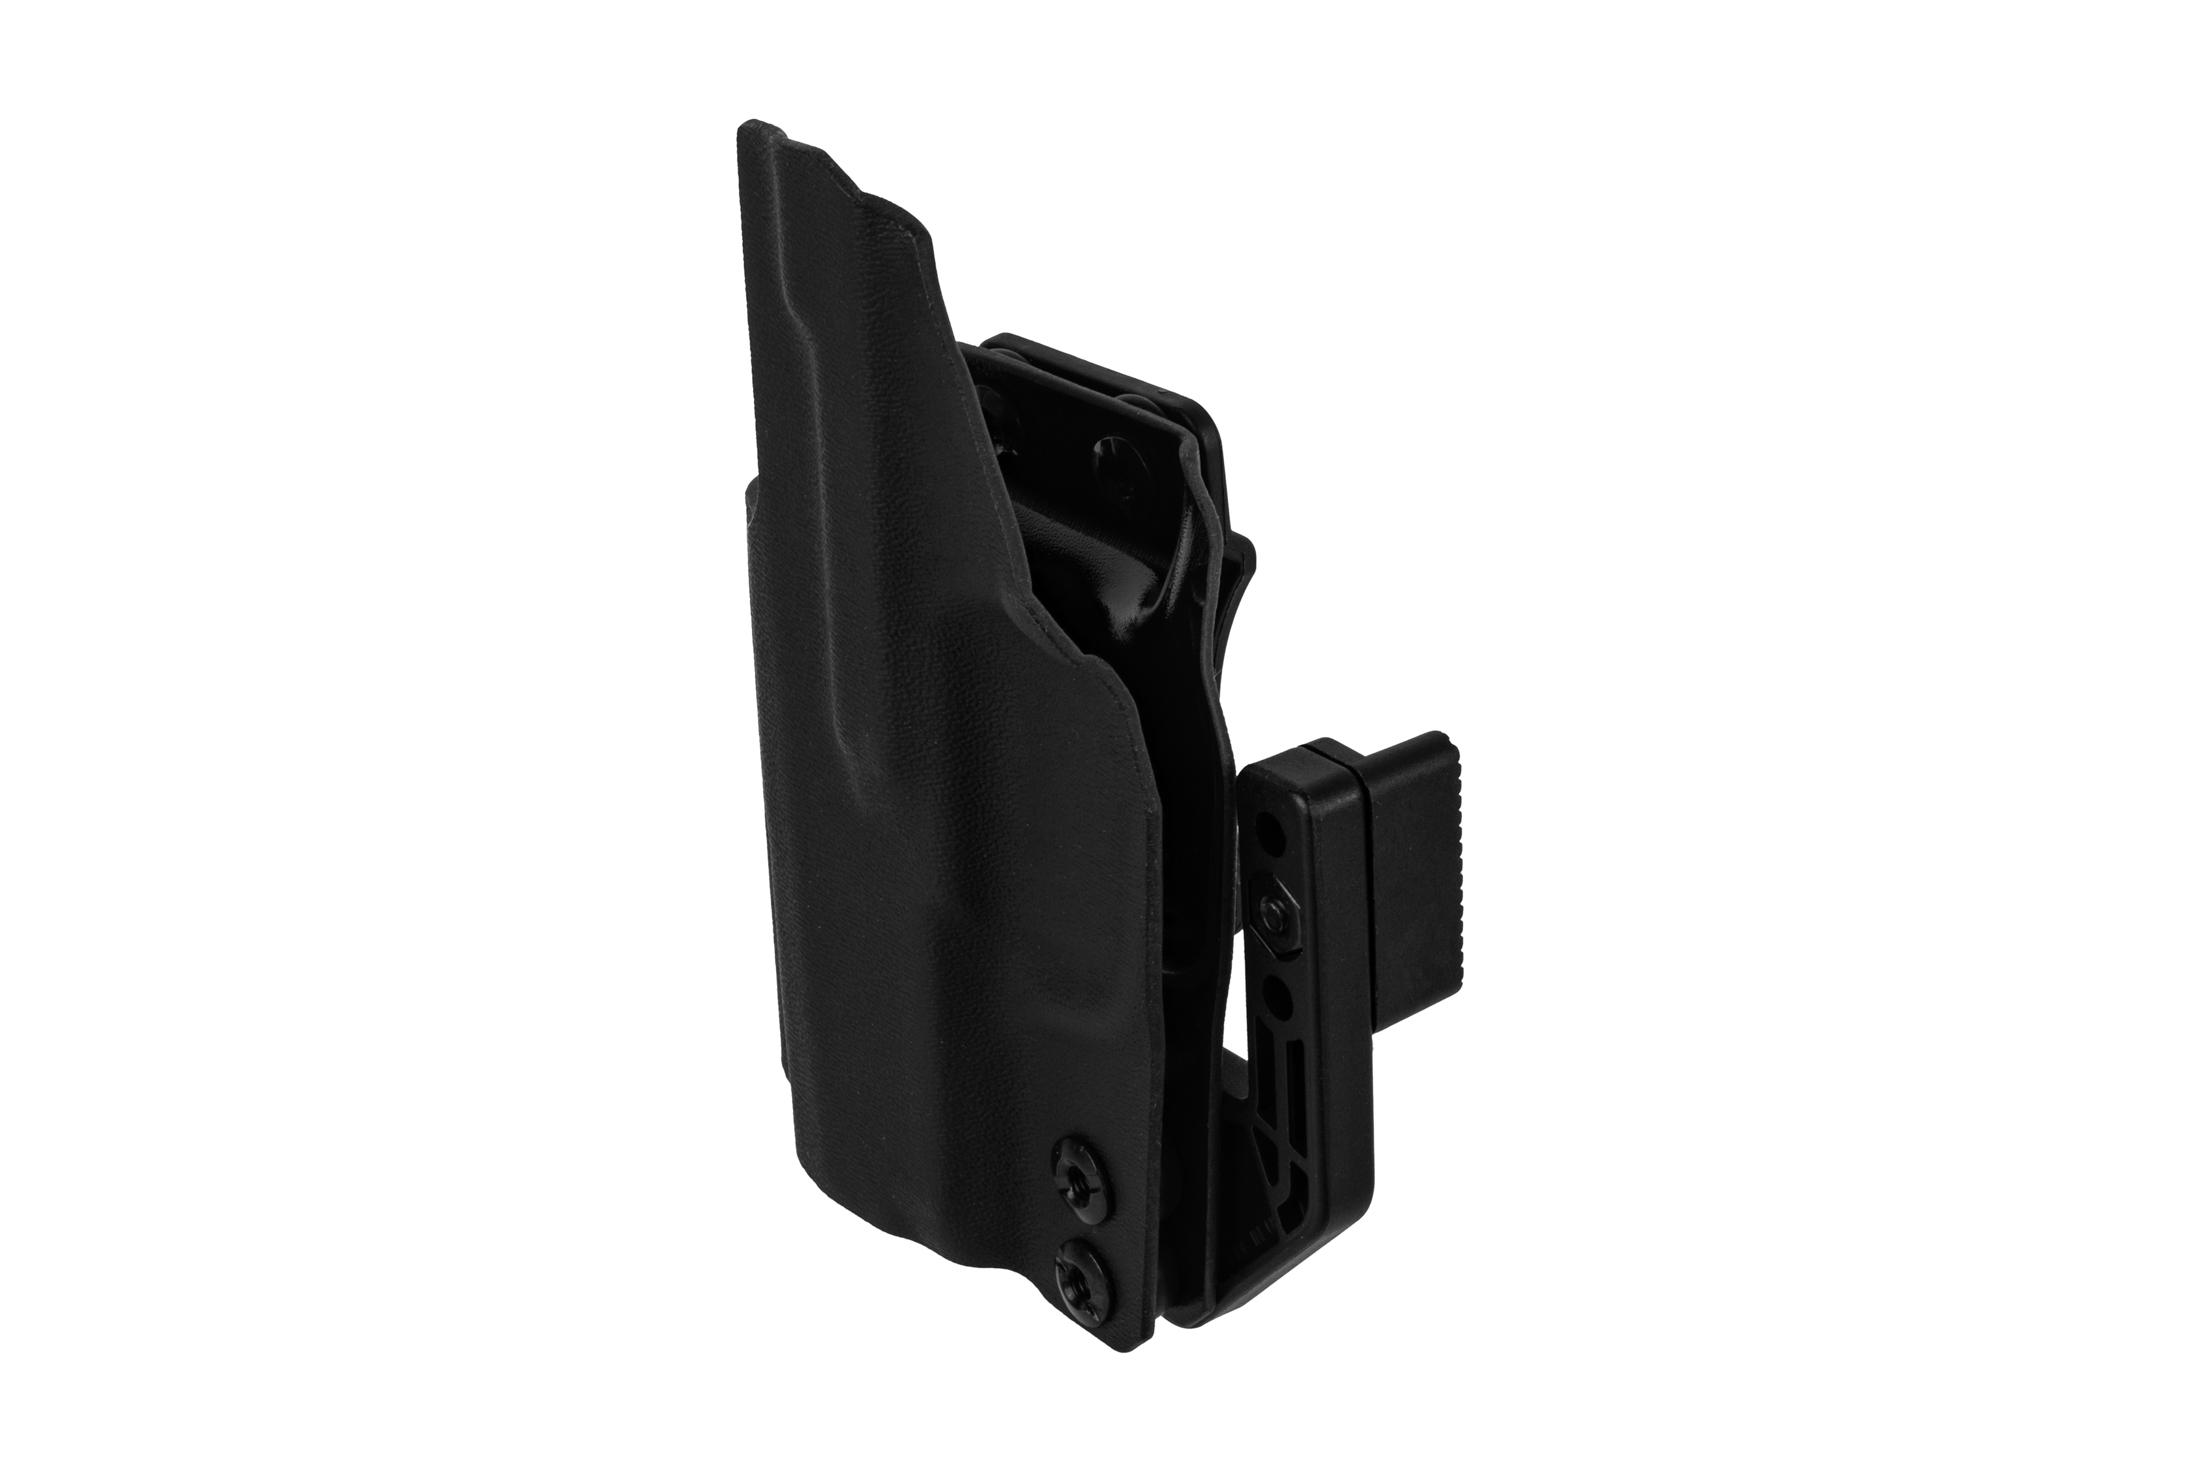 ANR Design SIG P365 Appendix Holster is made from black Kydex